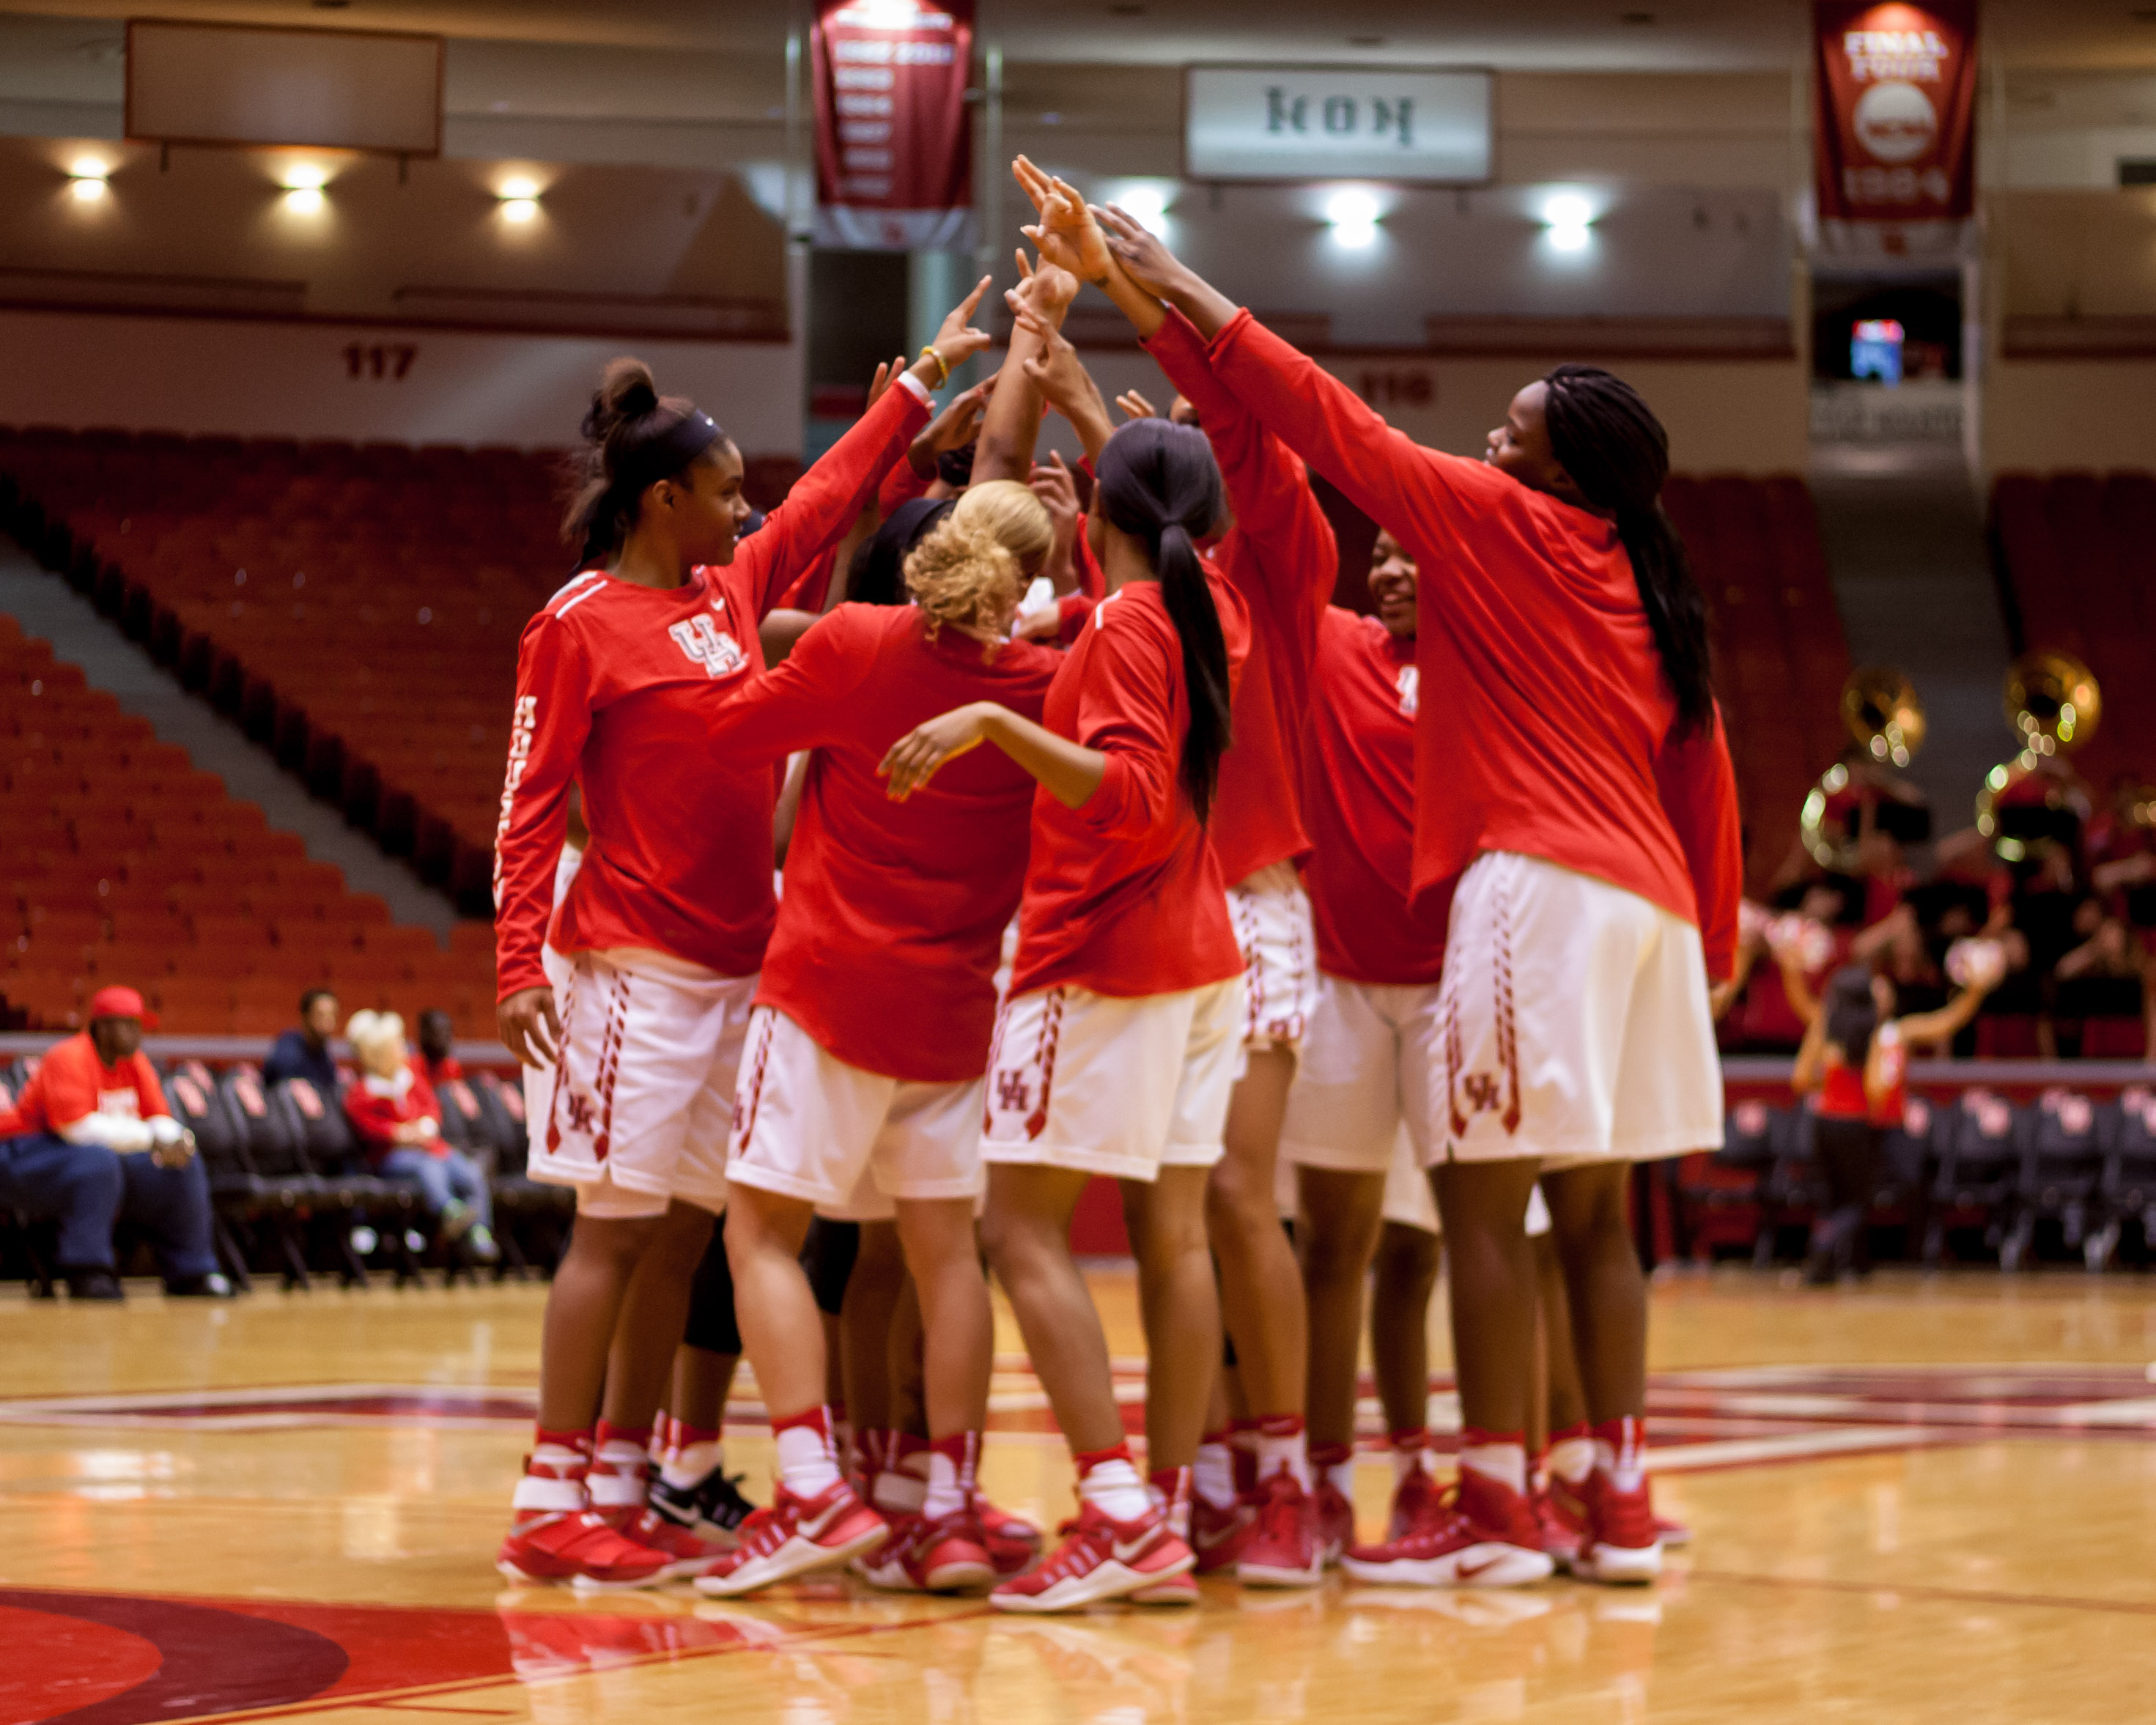 pavilion cougar women Houston – the houston cougar women's basketball team returned to the friendly confines of hofheinz pavilion with a 79-63 victory over college of charleston on sunday.